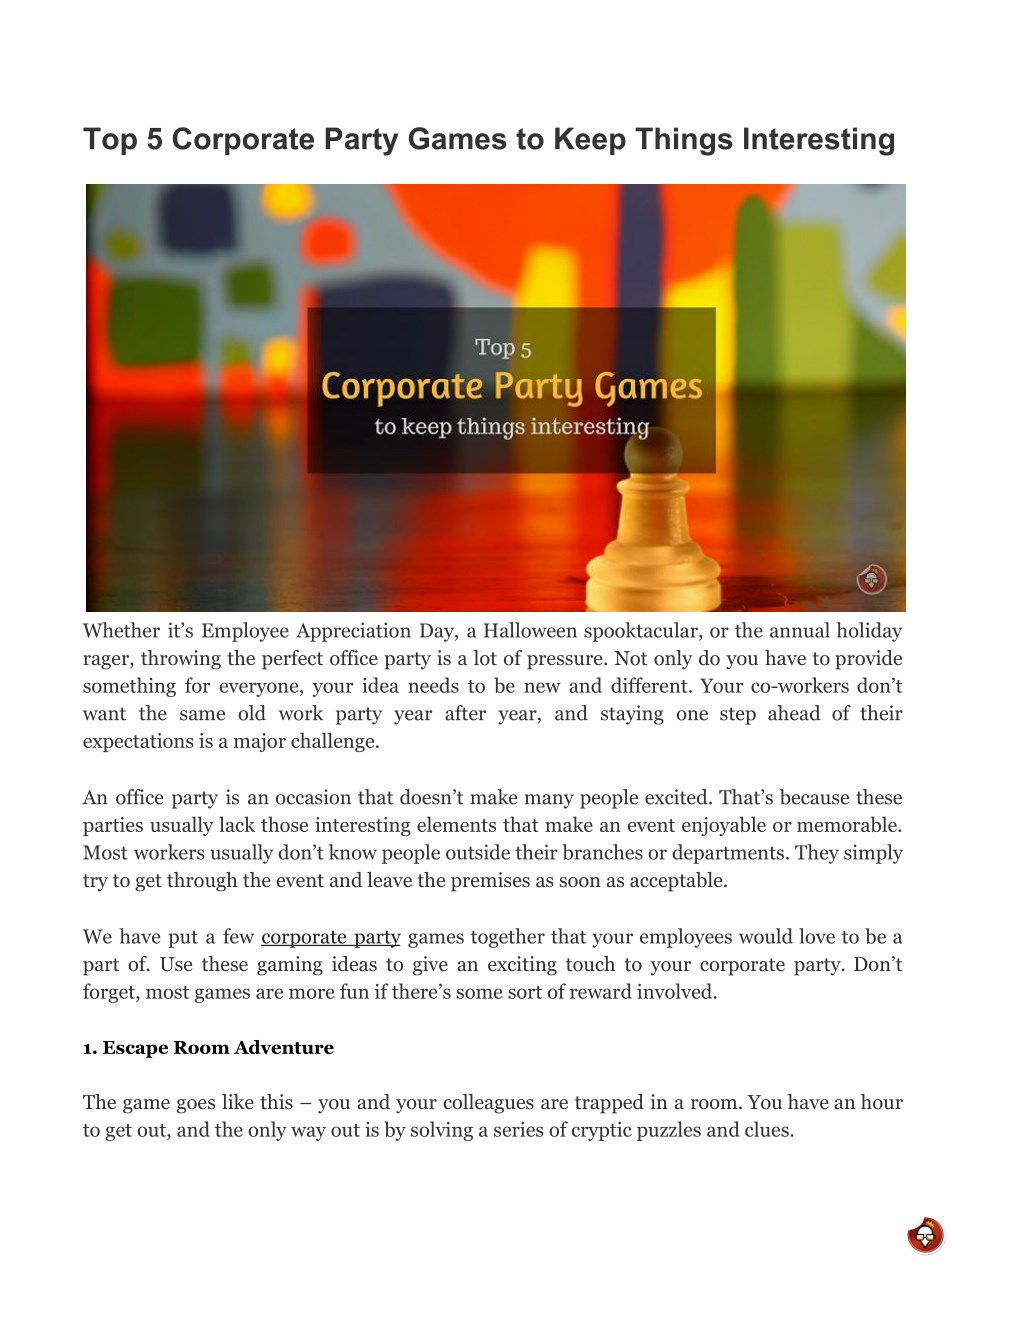 Office Party Game Ideas from image4.slideserve.com